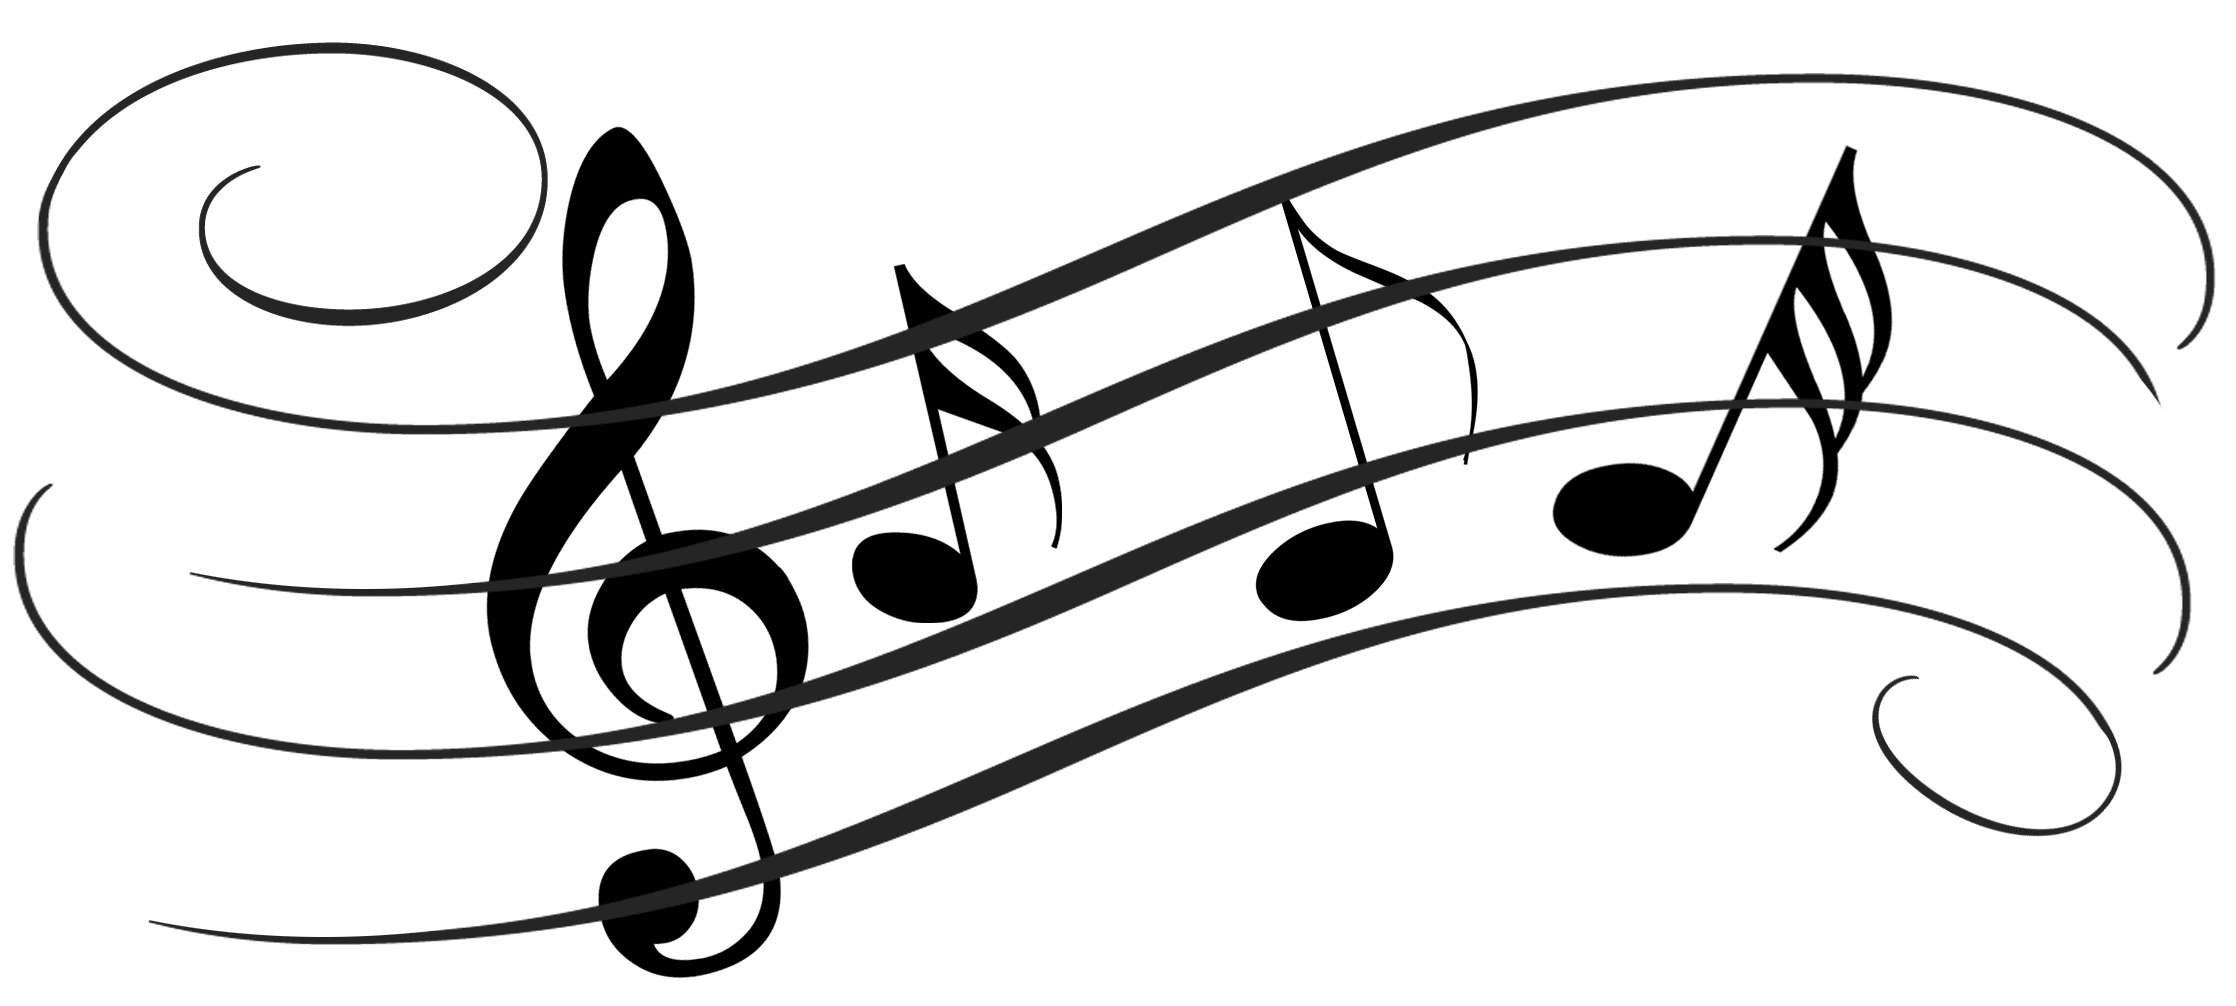 Song Notes Clip Art